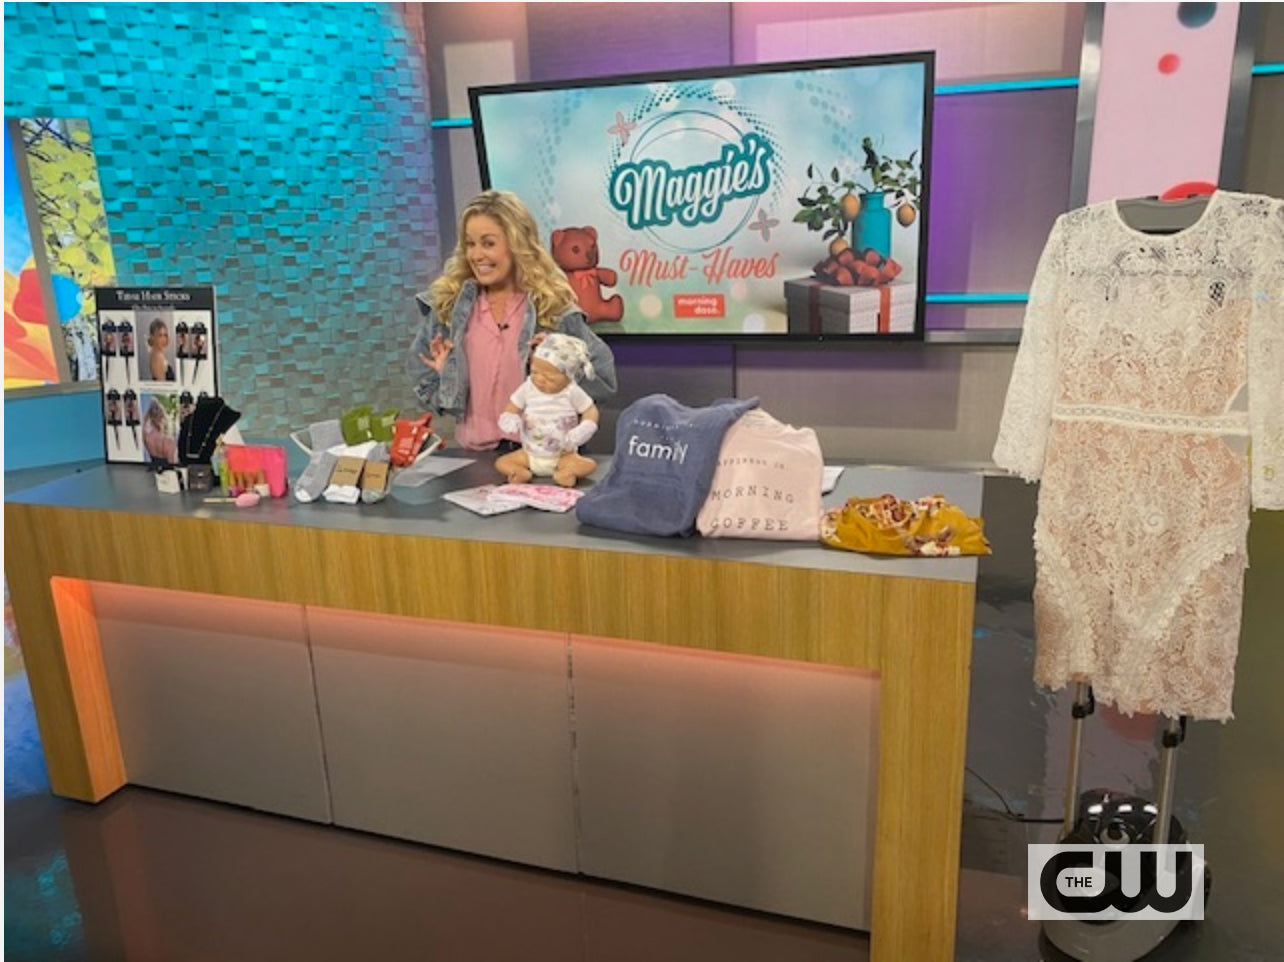 The CW: Fashion items you must-have for Spring